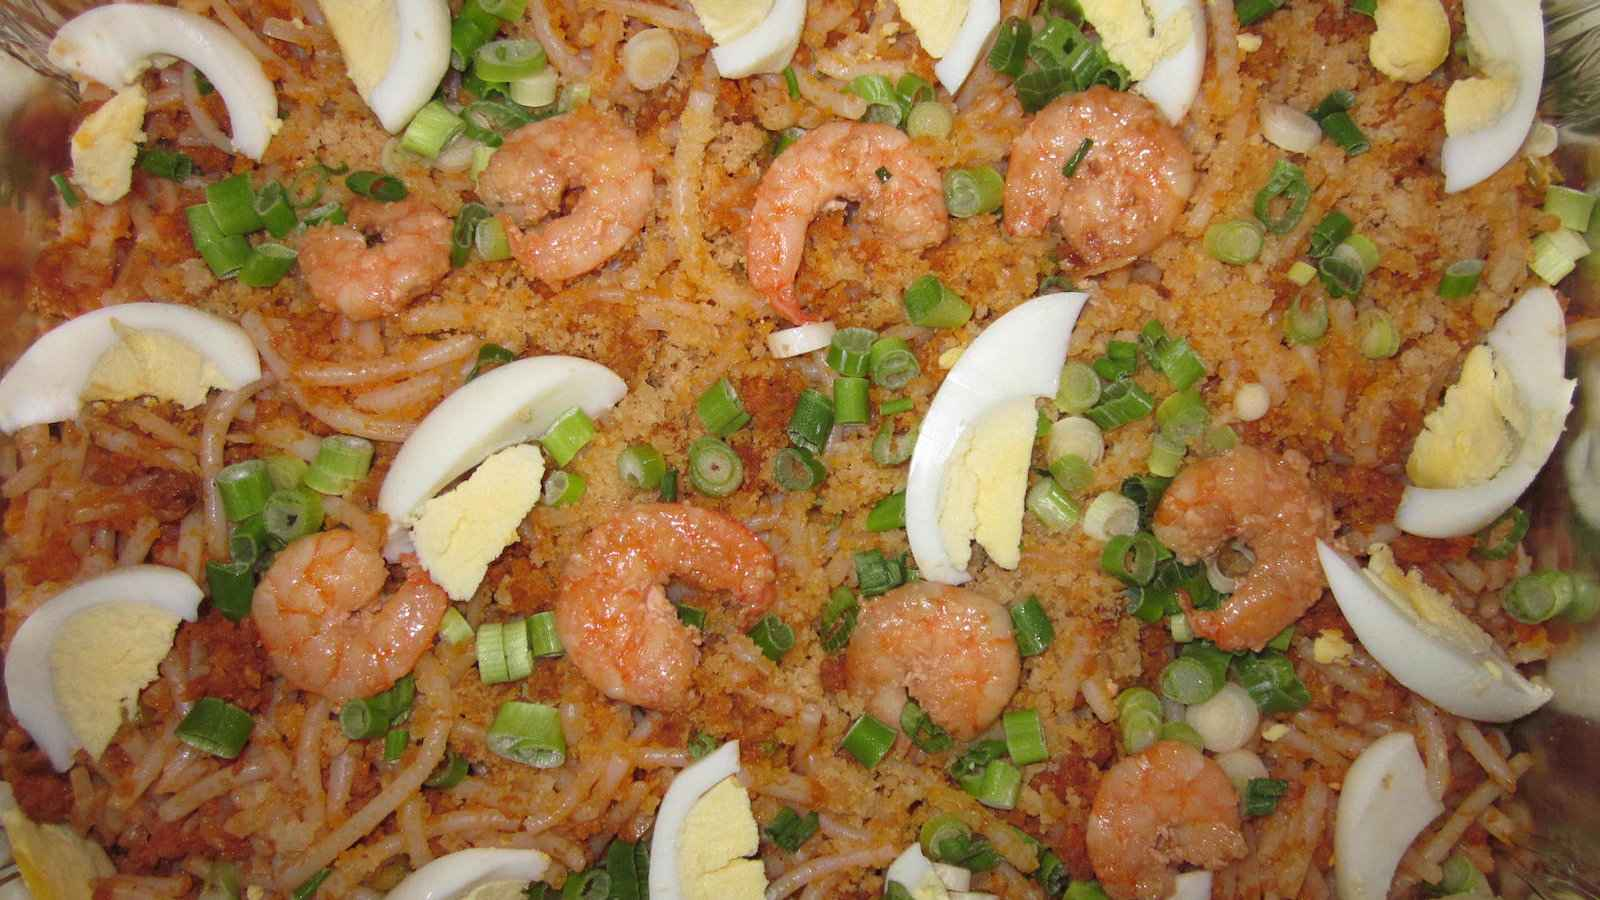 Pancit palabok is a rich and satisfying dish from the Philippines that we loved